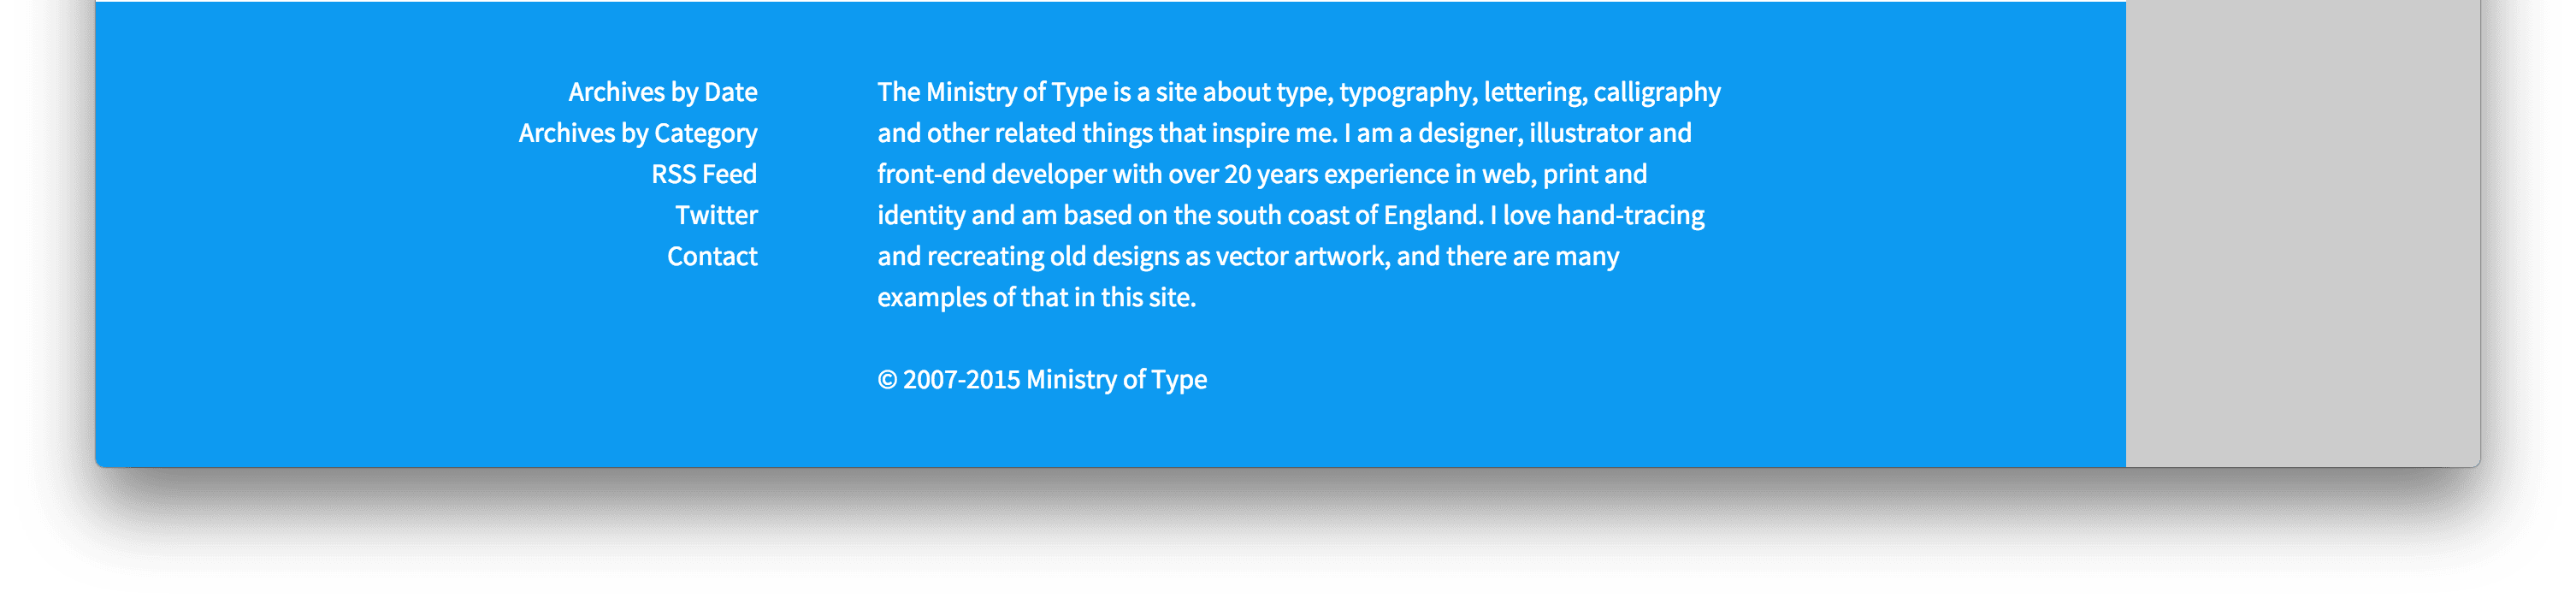 04_MinistryofType